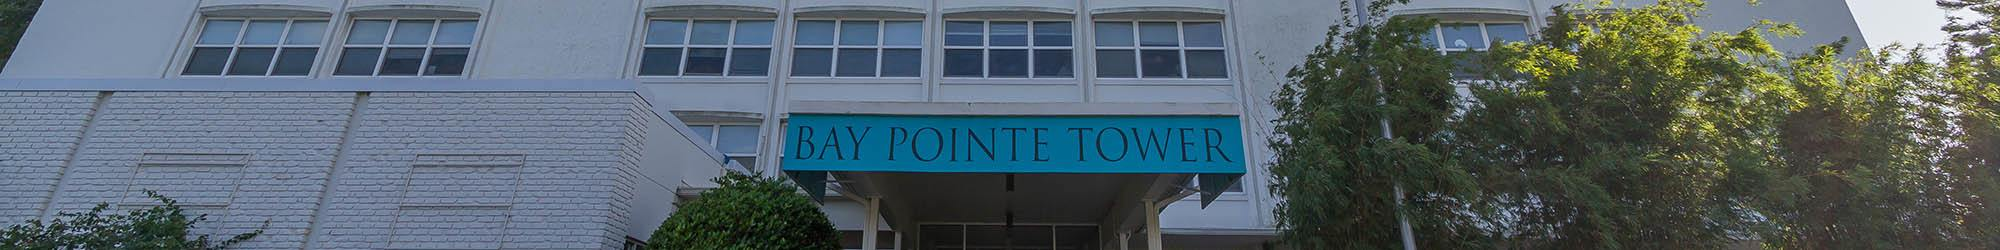 Contact Bay Pointe Tower for information about our apartments in South Pasadena